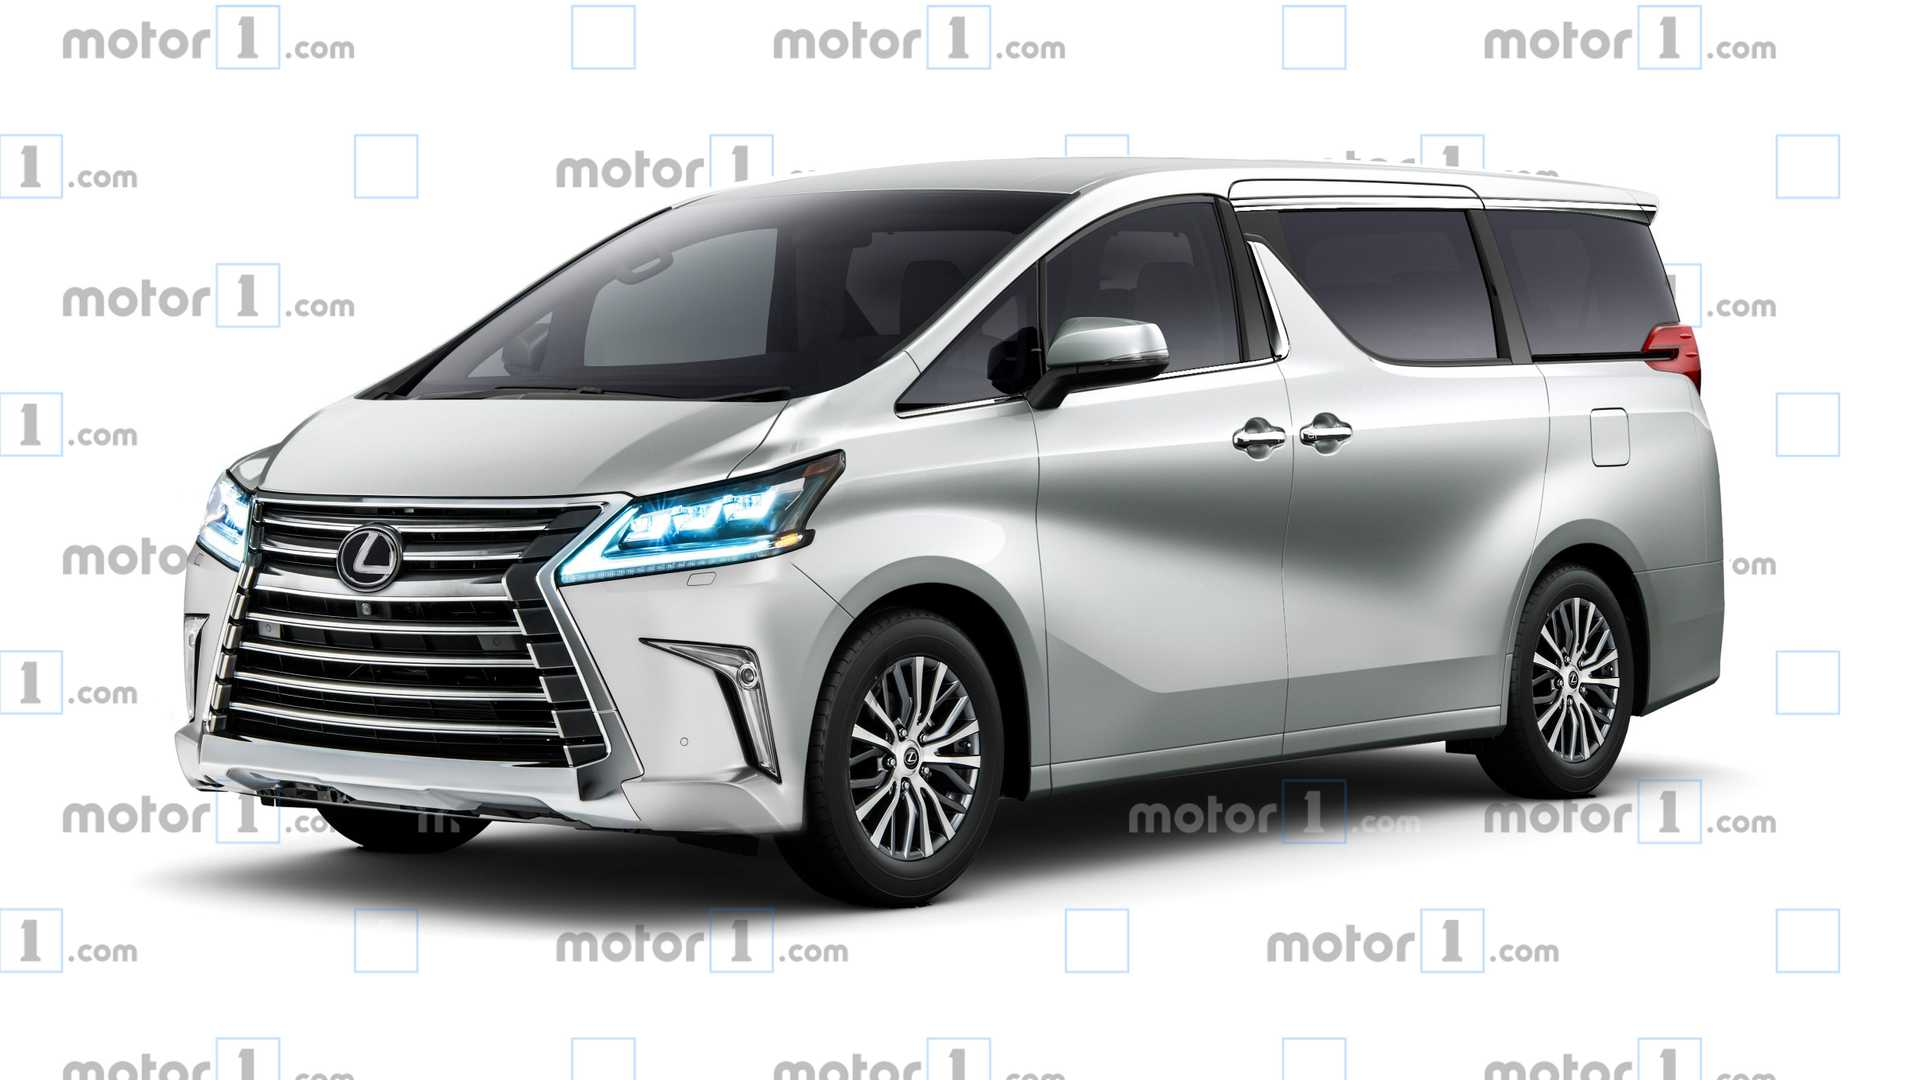 Lexus Minivan Assembly Starts In 2020 Japanese Paper Claims